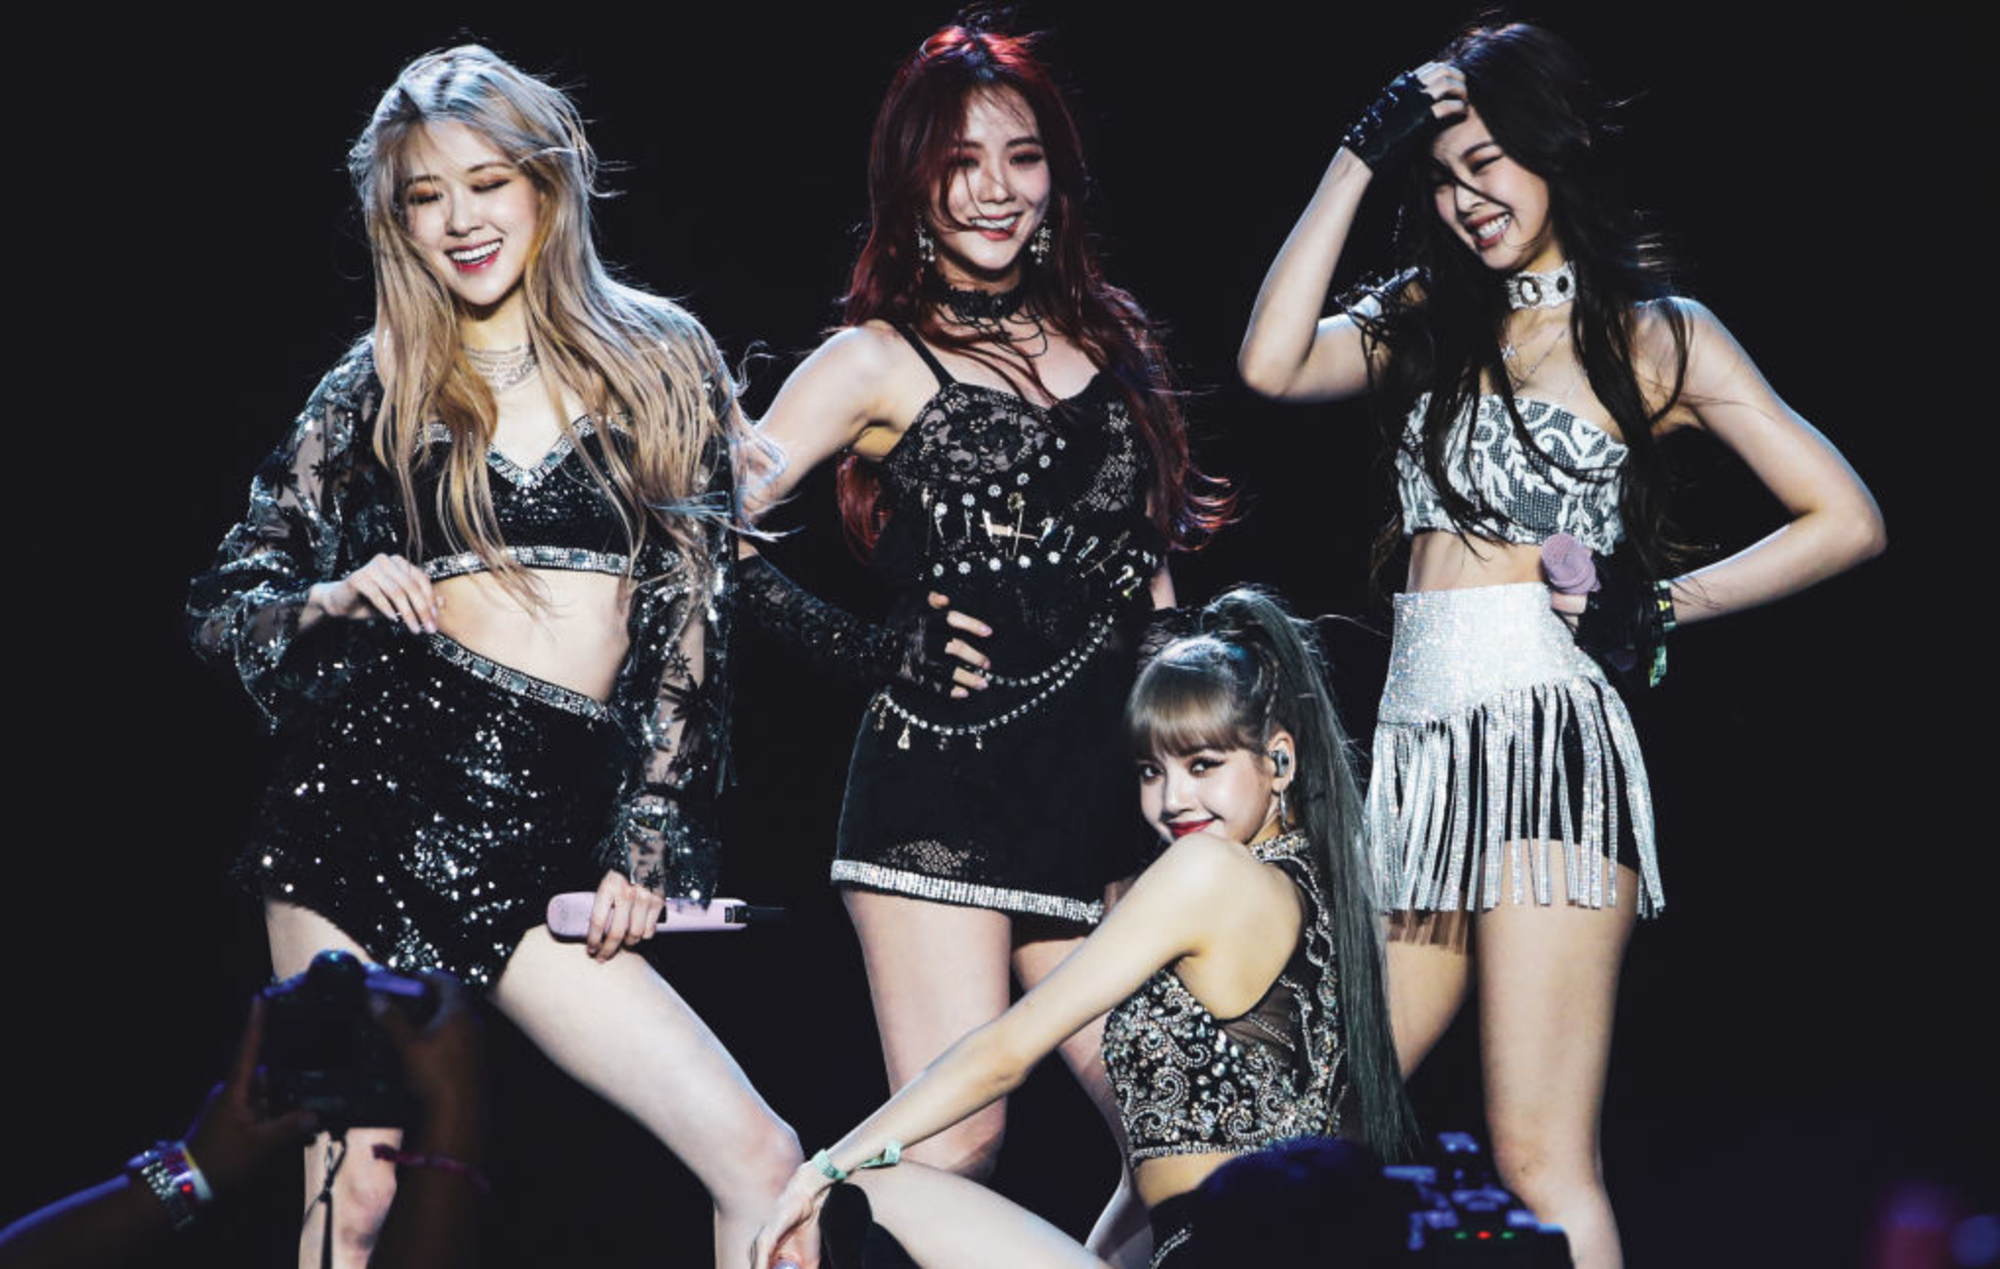 BLACKPINK surpass 60milllion YouTube subscribers, second only to Justin Bieber